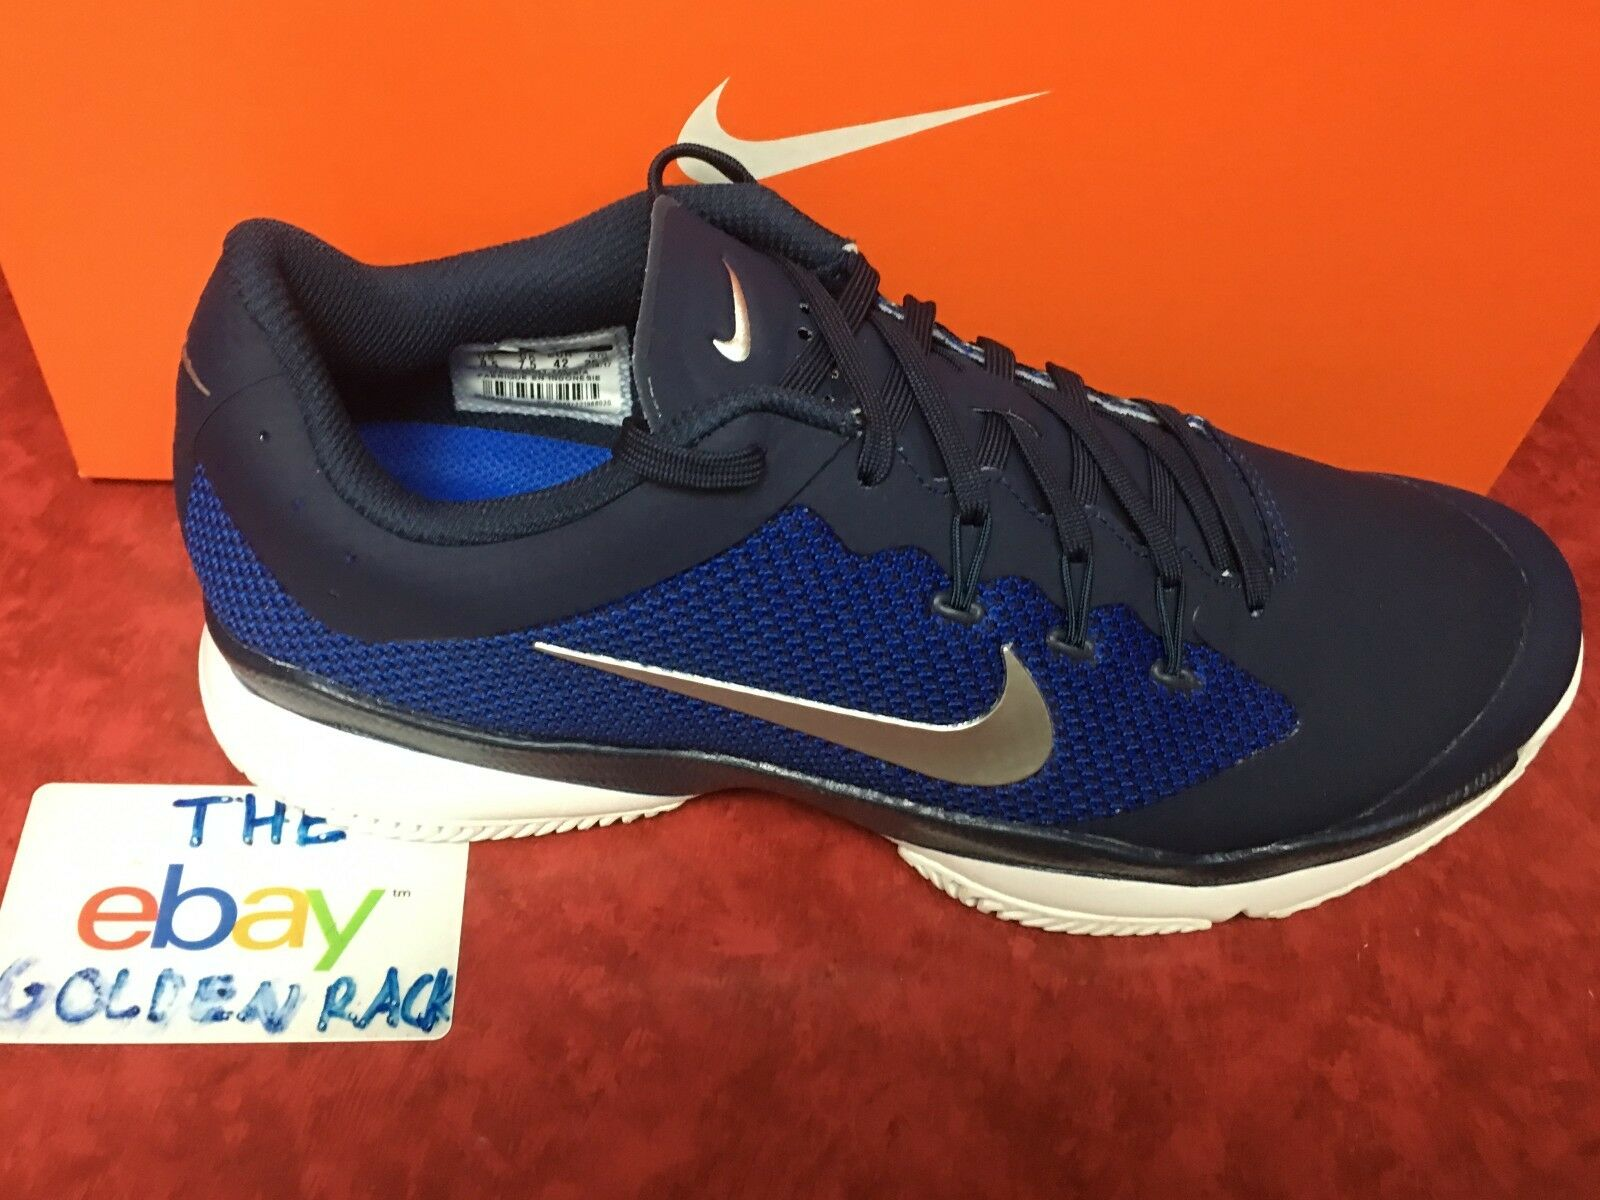 Men's NIKE Court Tennis Air Zoom Ultra Navy Shoes Size US 8.5 - 845007-440